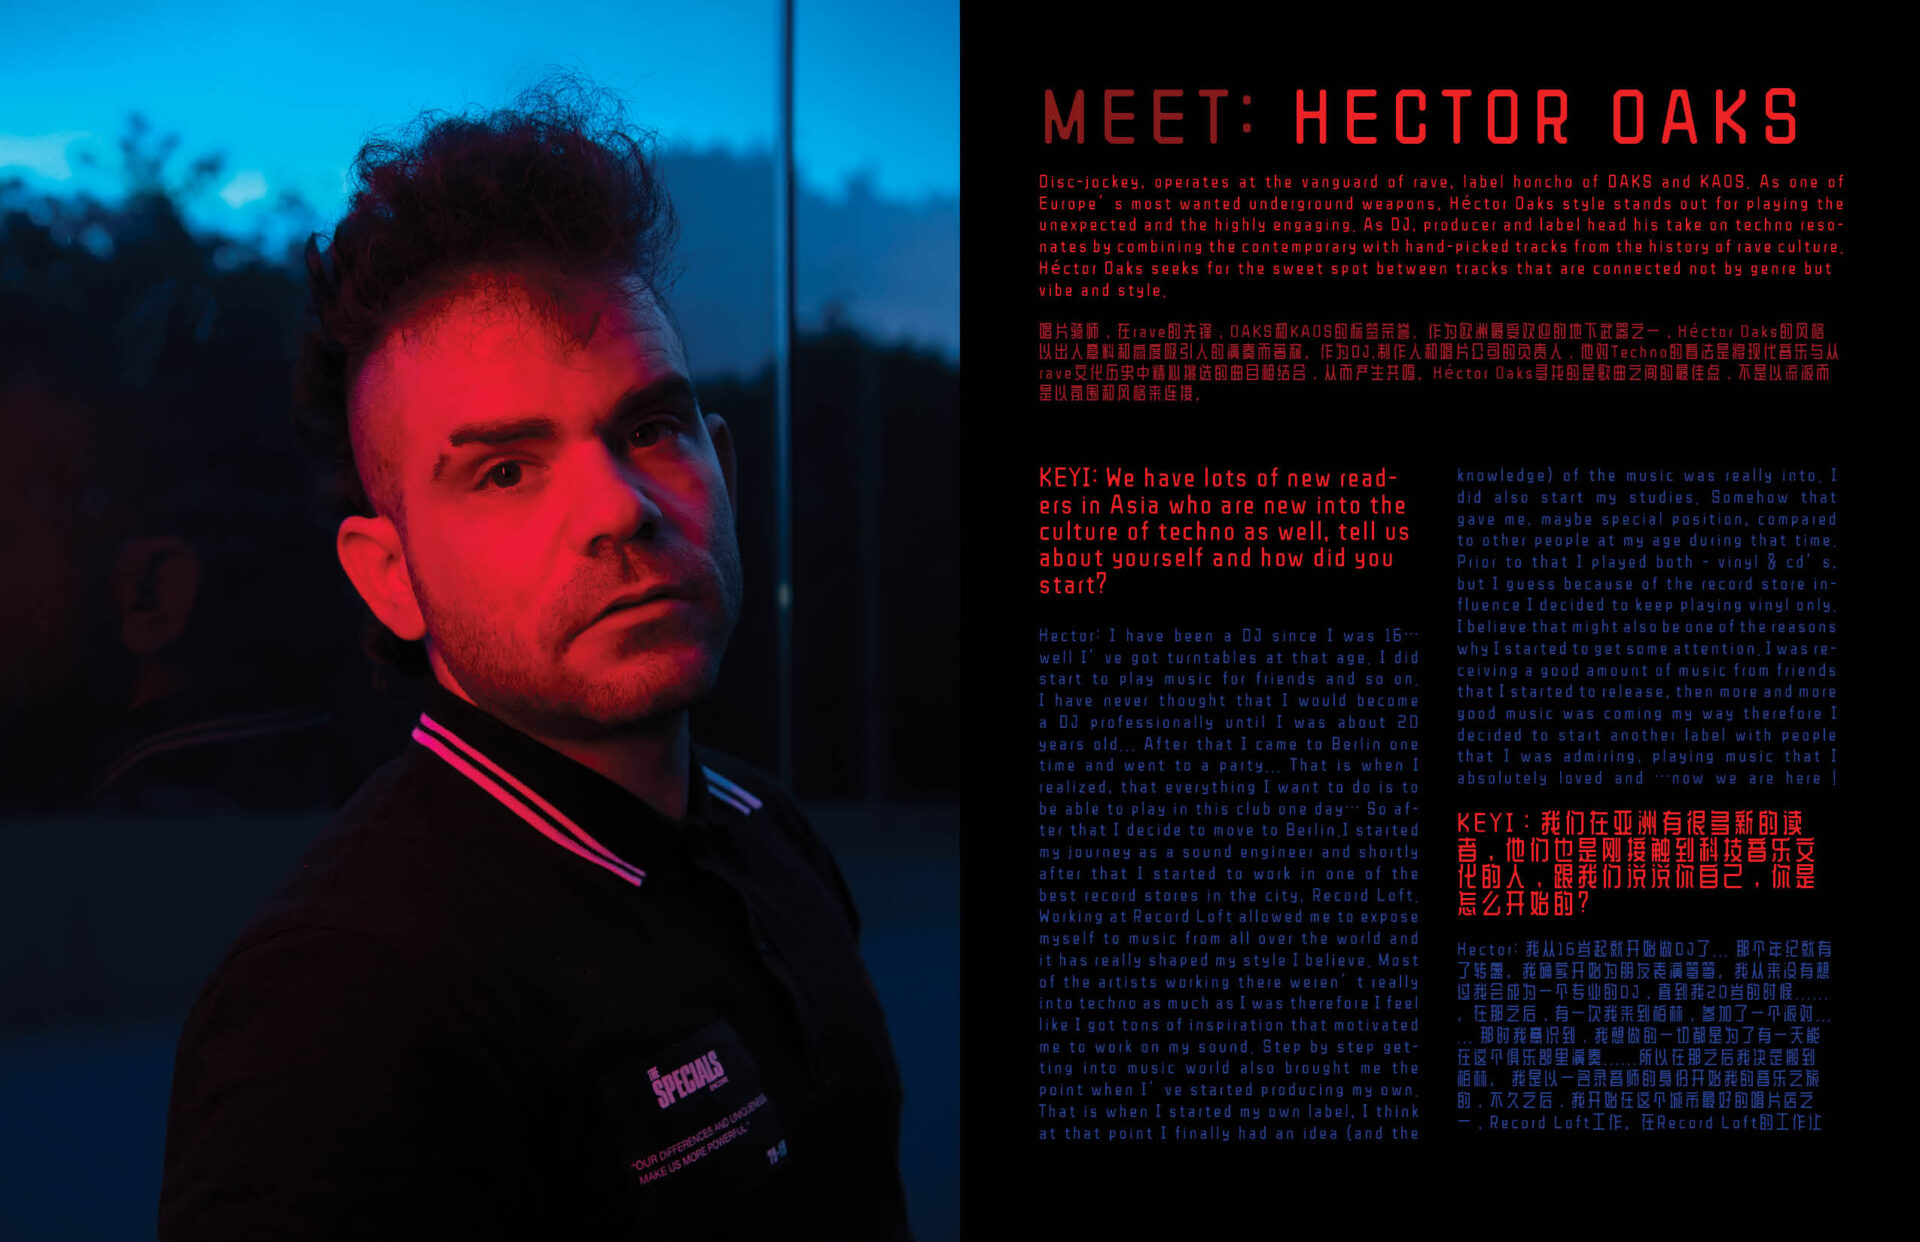 photoshoot with hector oaks for keyi magazine Berlin by keyi studio